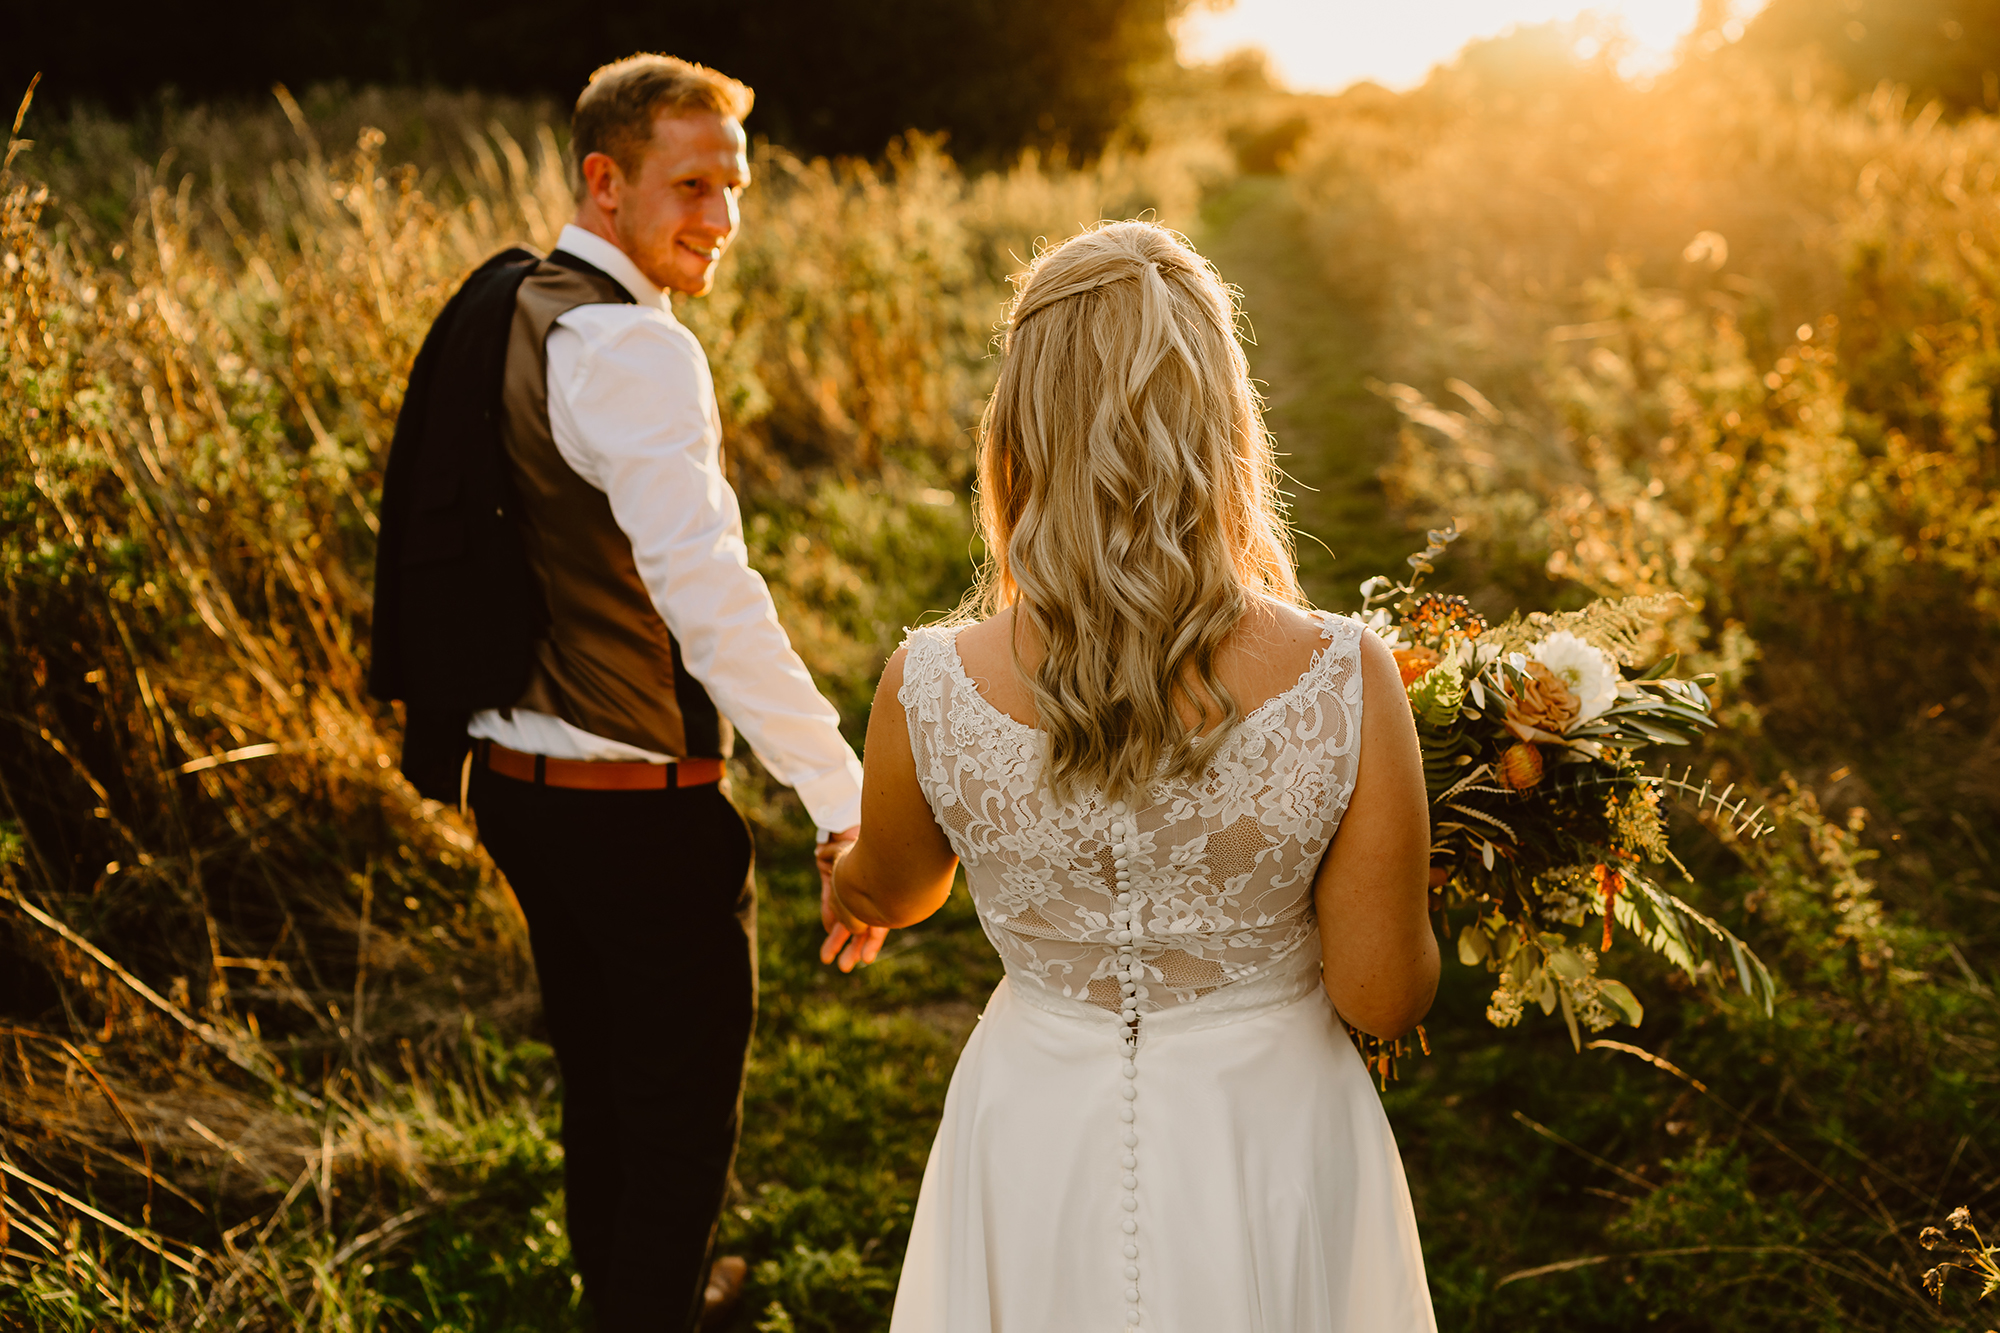 Bride and Groom Genevieve & John Walking the Gardens at Ivy House Country Hotel During Sunset